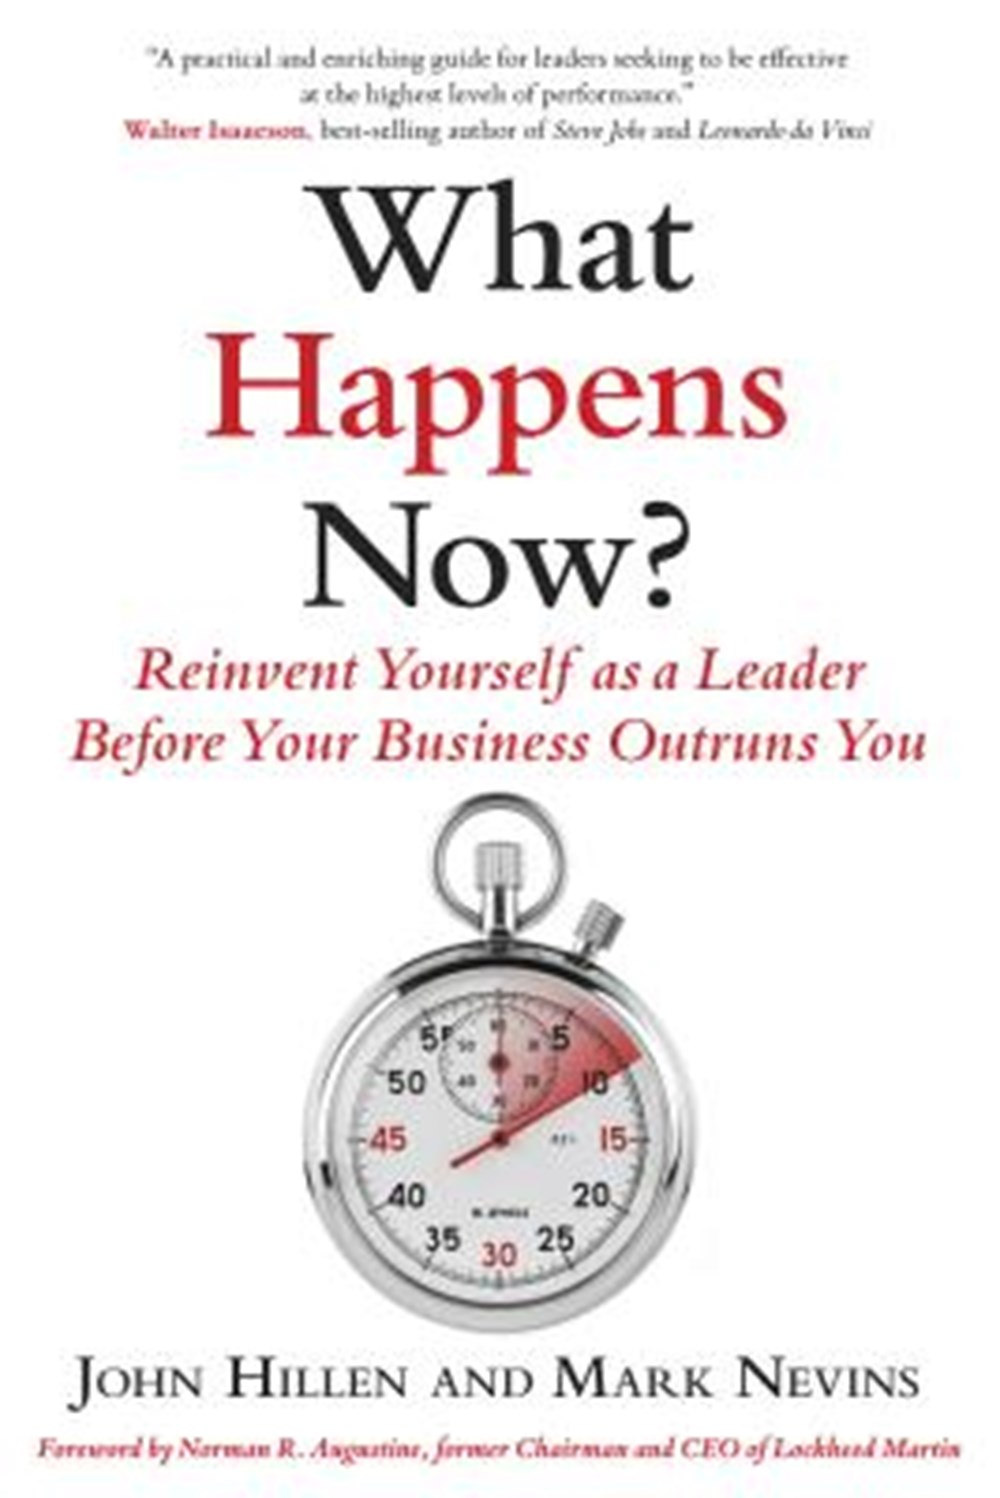 What Happens Now? Reinvent Yourself as a Leader Before Your Business Outruns You